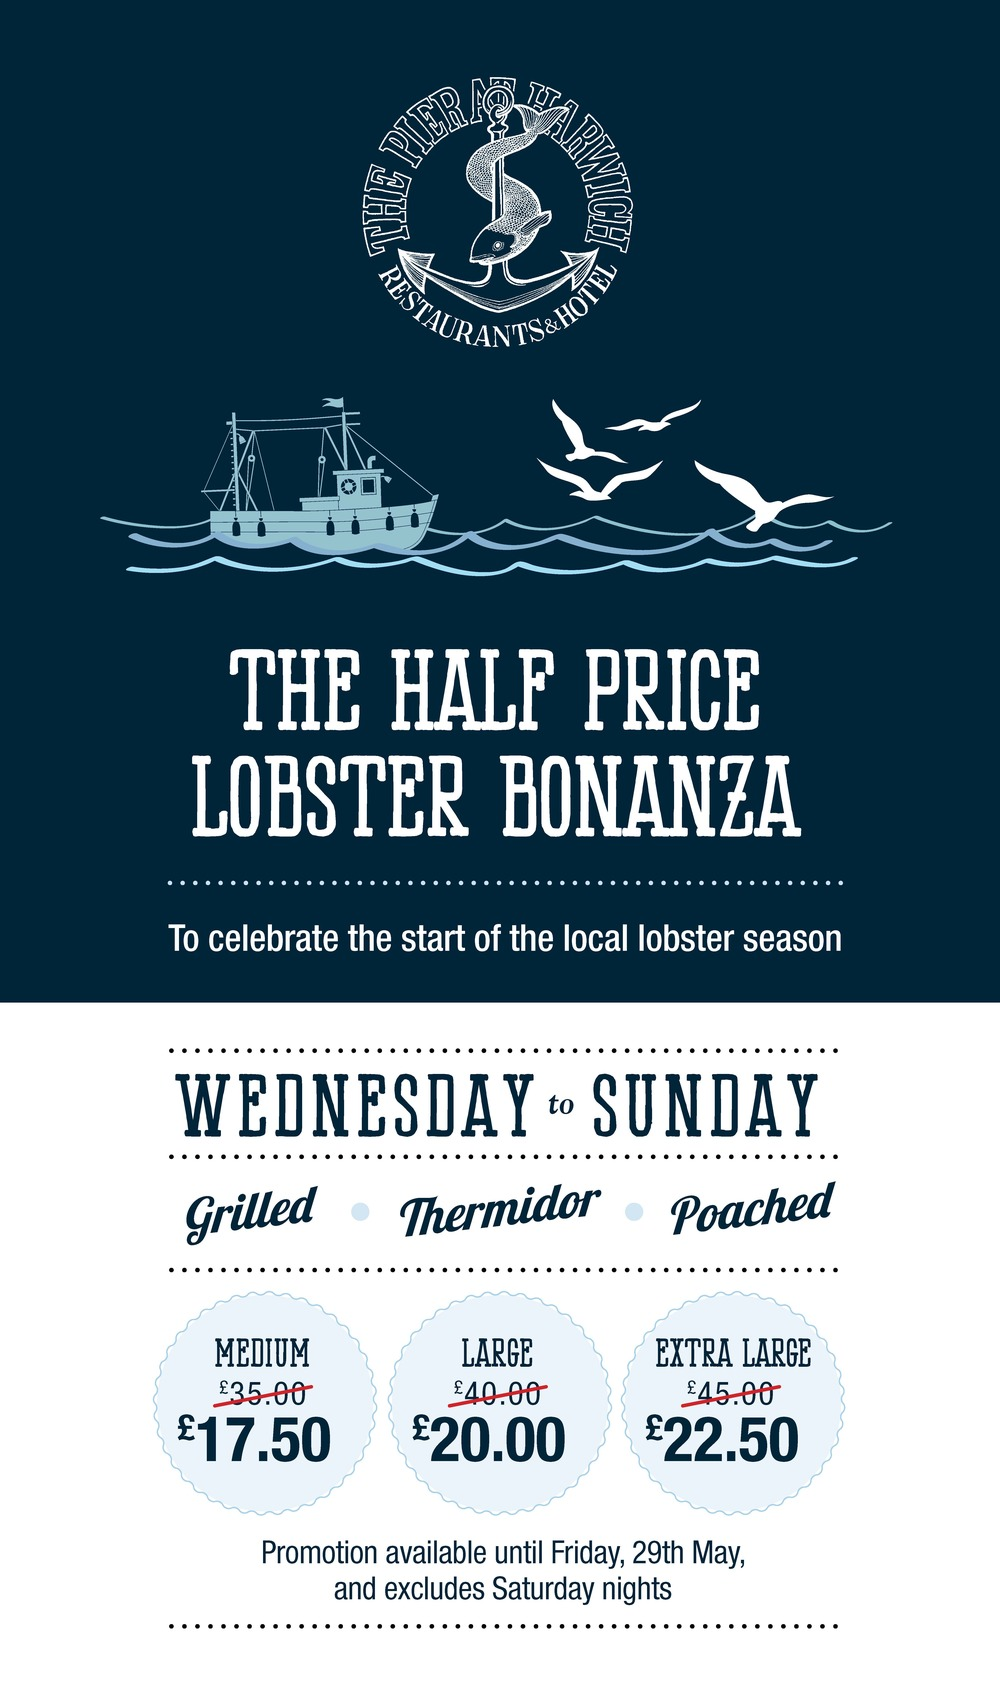 Lobster Bonanza campaign delivers TWICE as many guests in 2015 for Milsom Hotels!